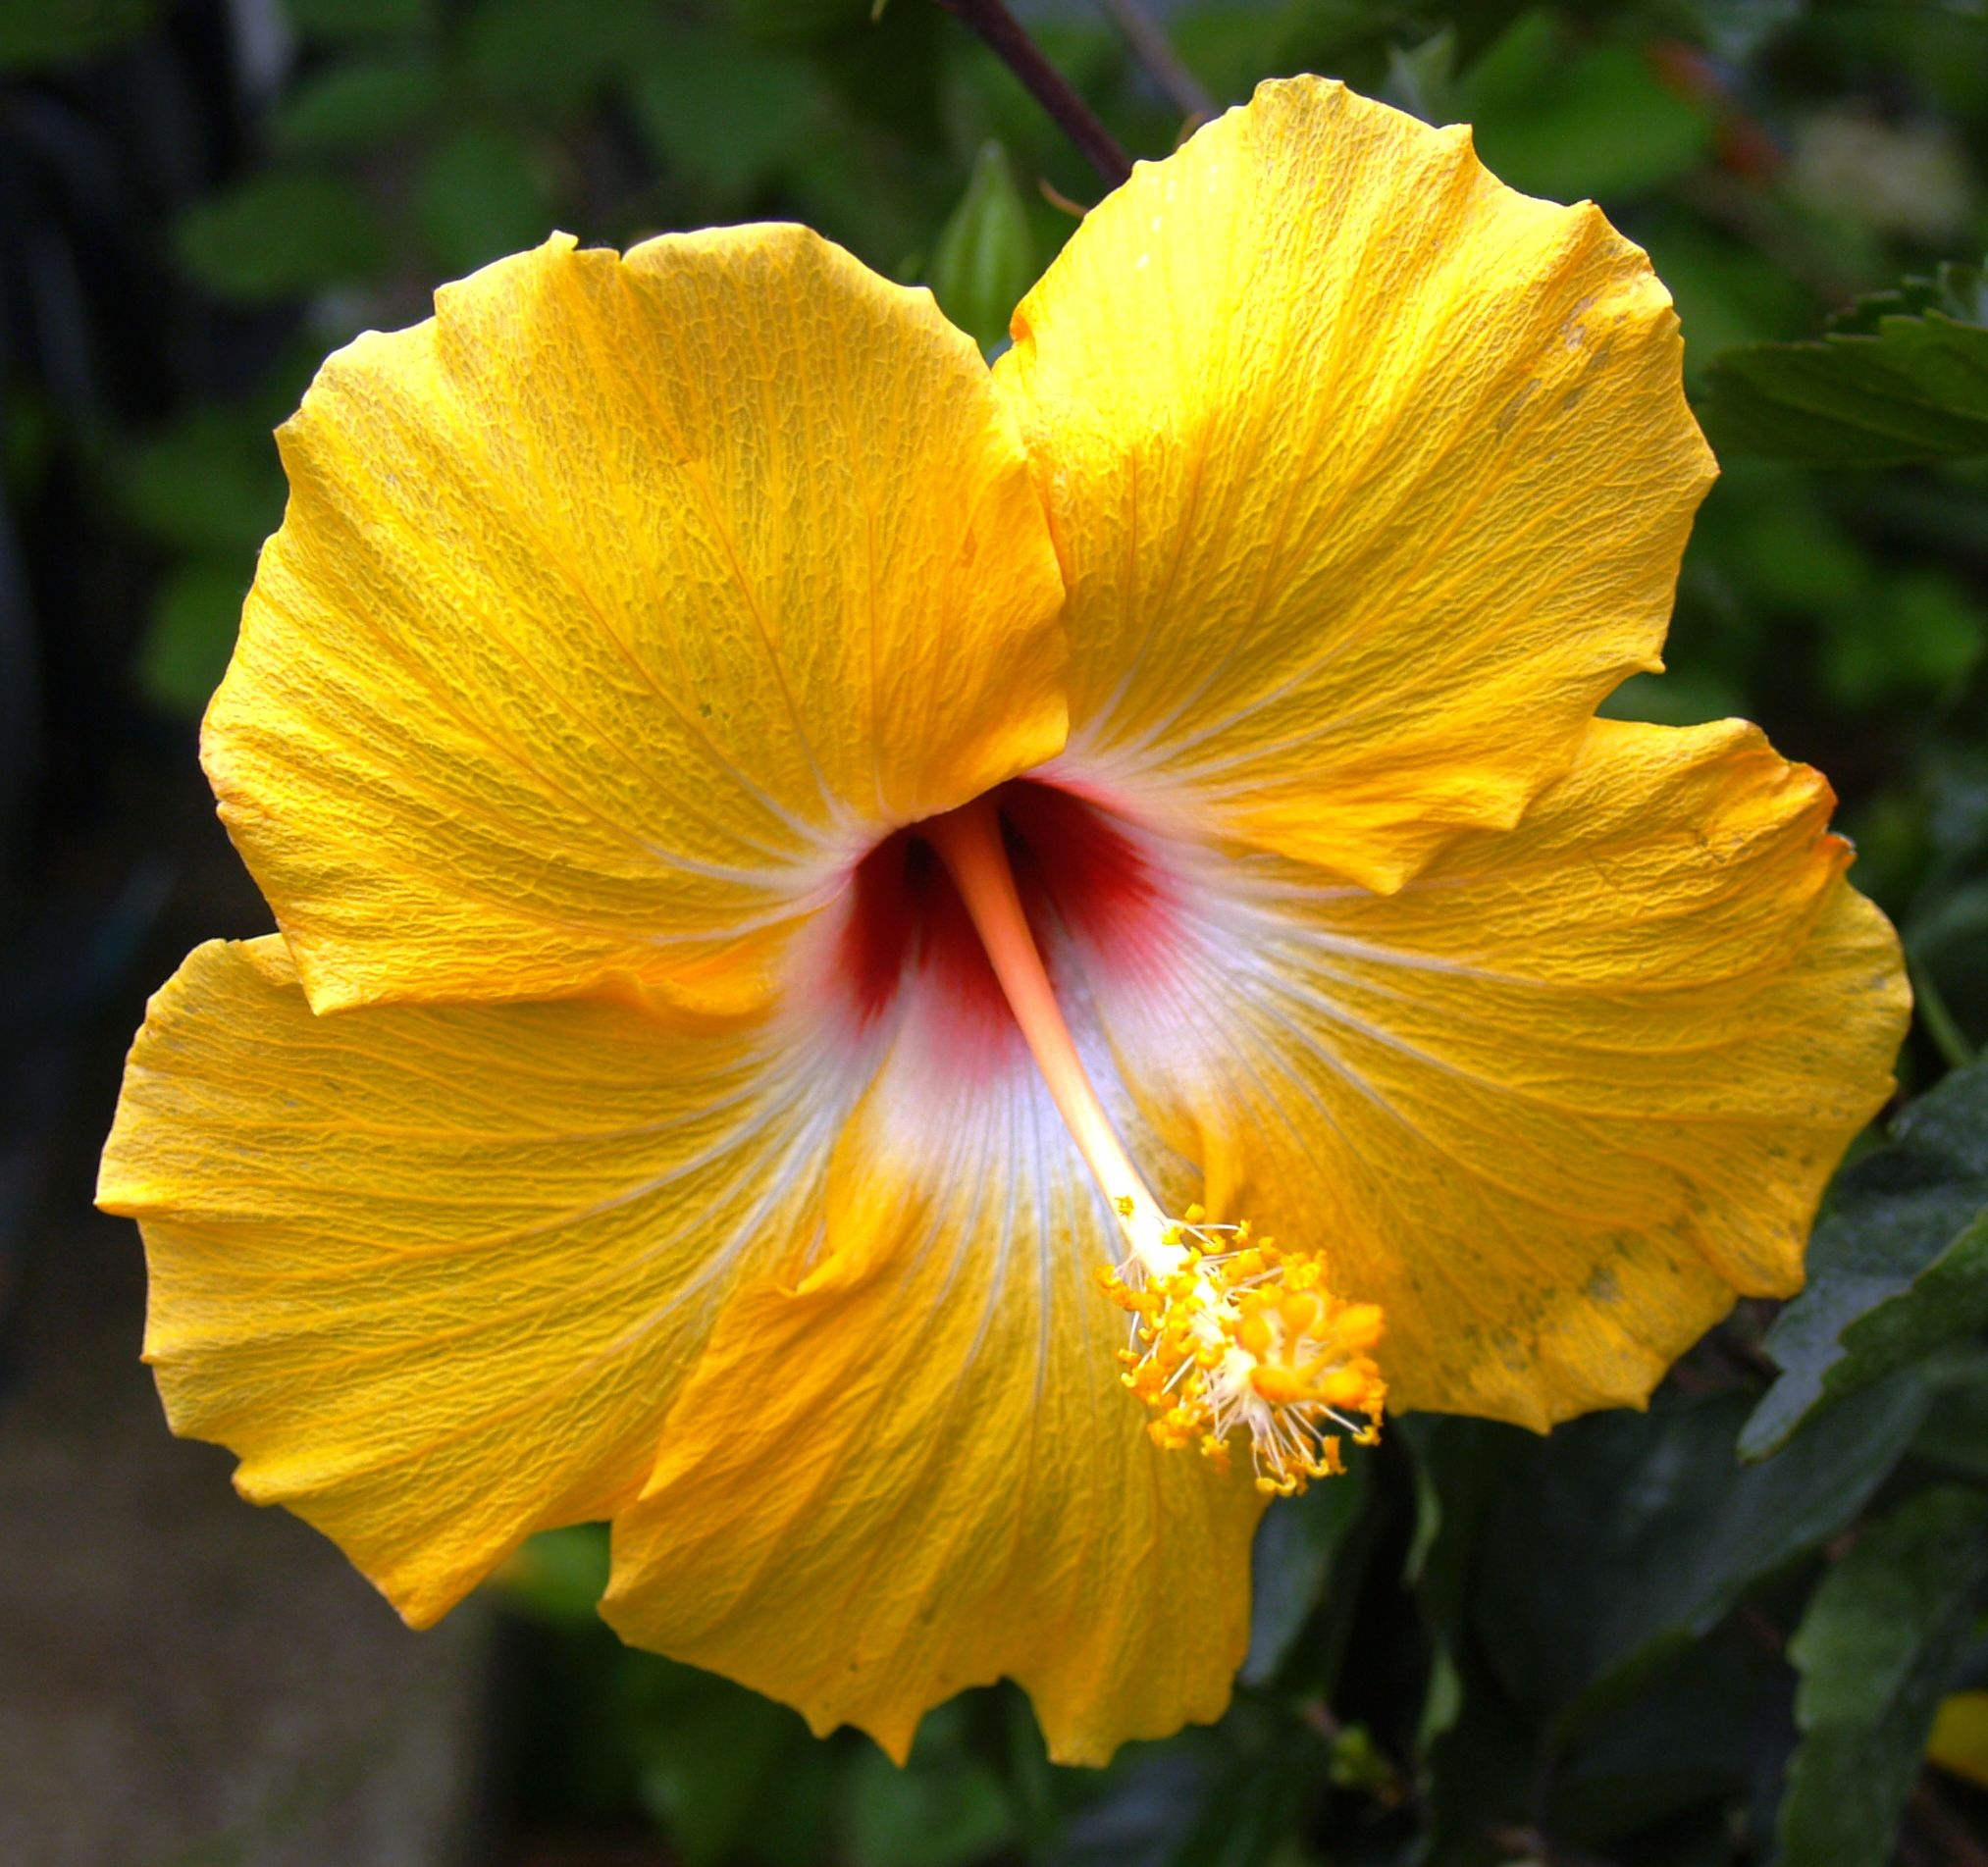 Yellow hibiscus official flower of hawaii kauai hawaii 2012 yellow hibiscus official flower of hawaii izmirmasajfo Choice Image